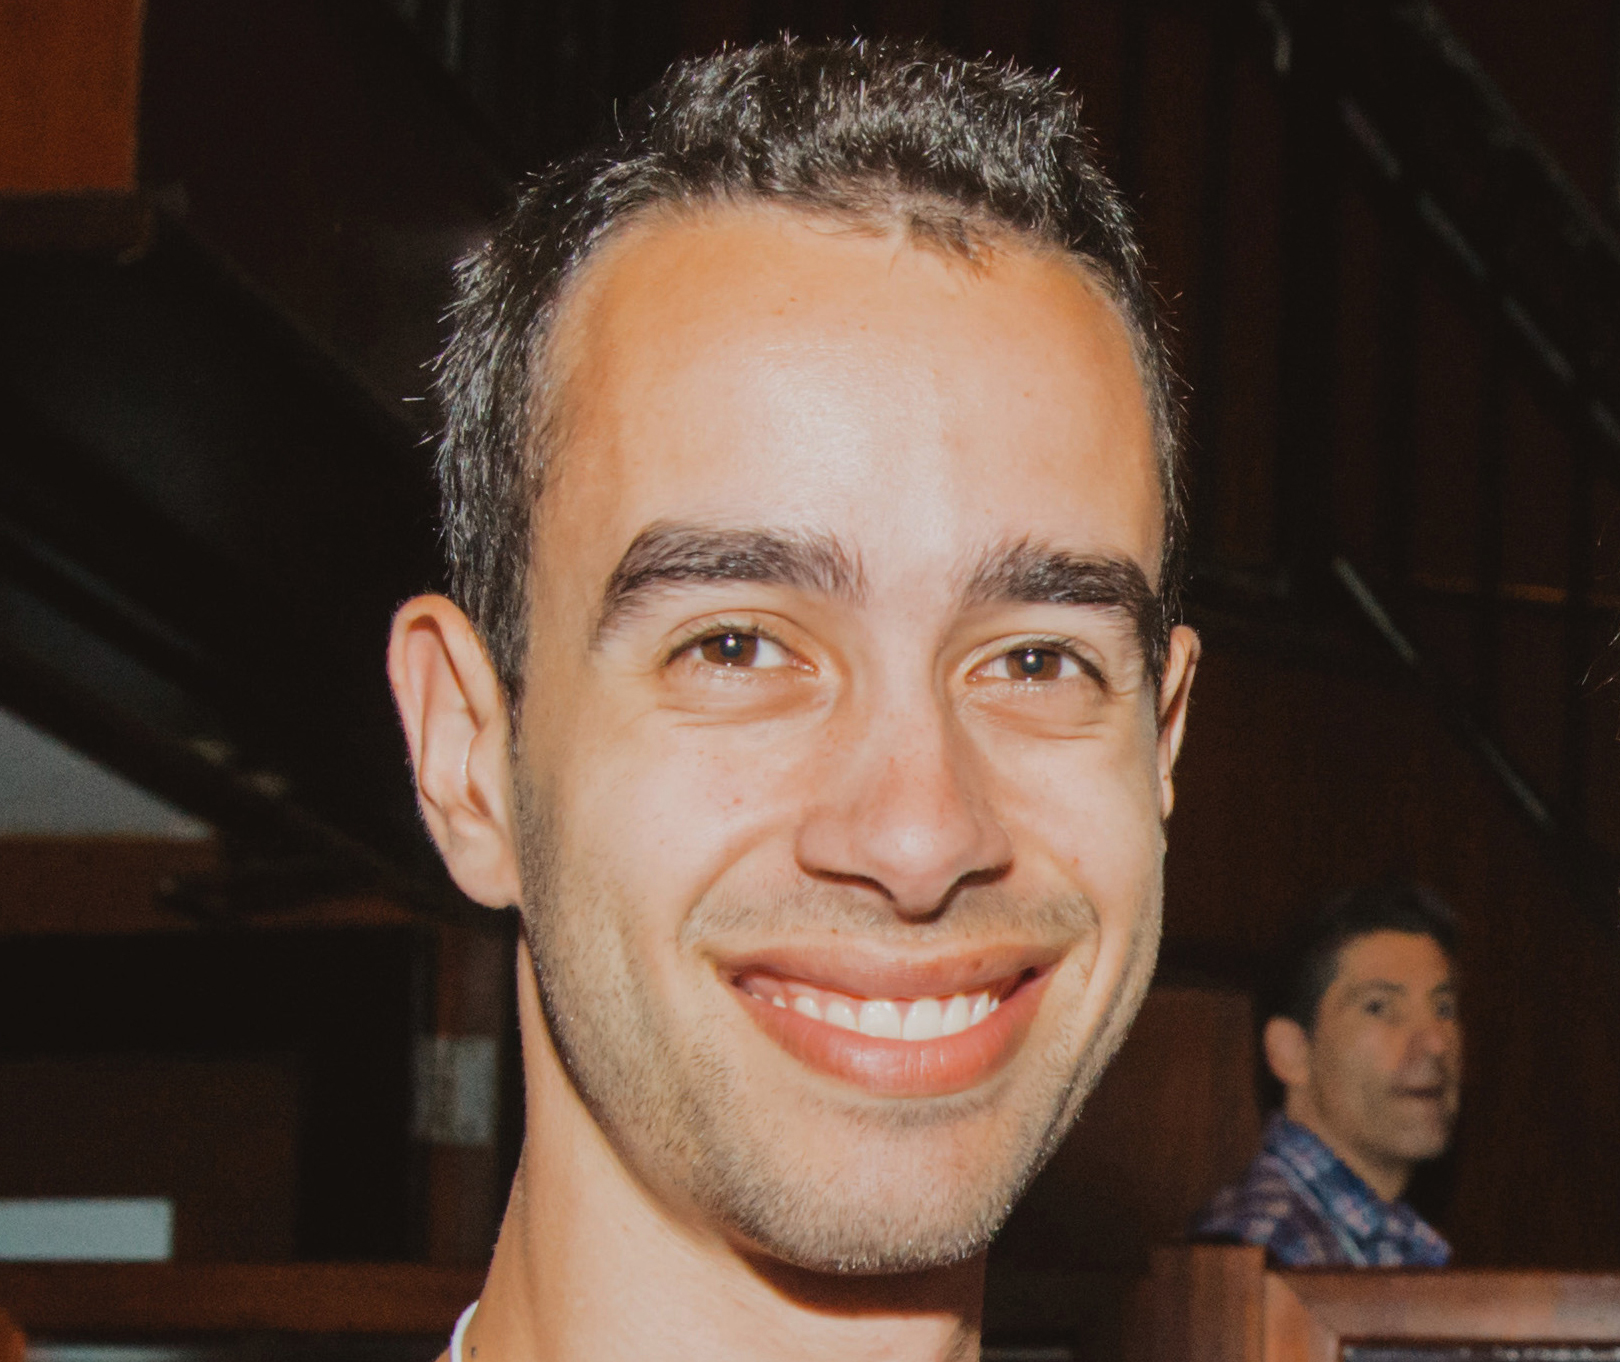 Julien graduated in 2012 Magna Cum Laude in Information Science with double minors in Science & Technology Studies and History. He credited Cornell with providing the opportunity to explore a broad range of diverse courses.